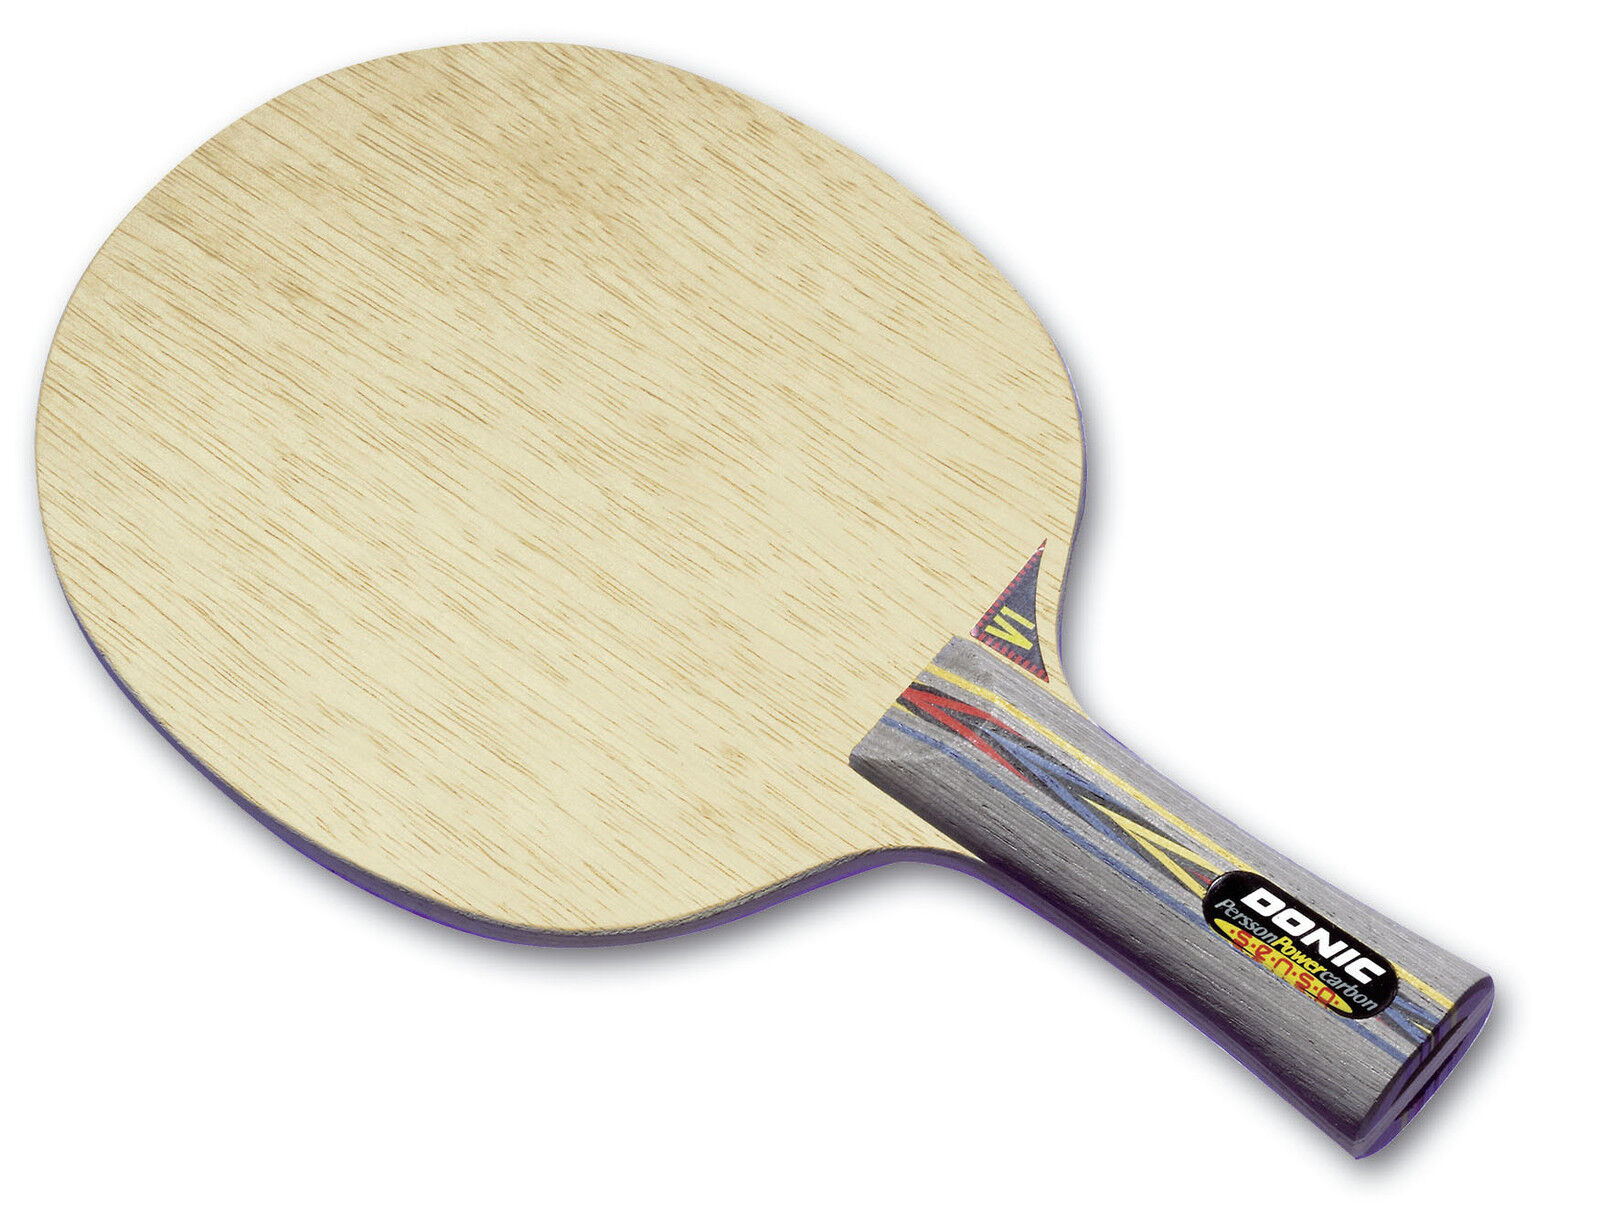 Donic Persson puissance Charbon Tennis de Table-Bois Raquette de Tennis de Table